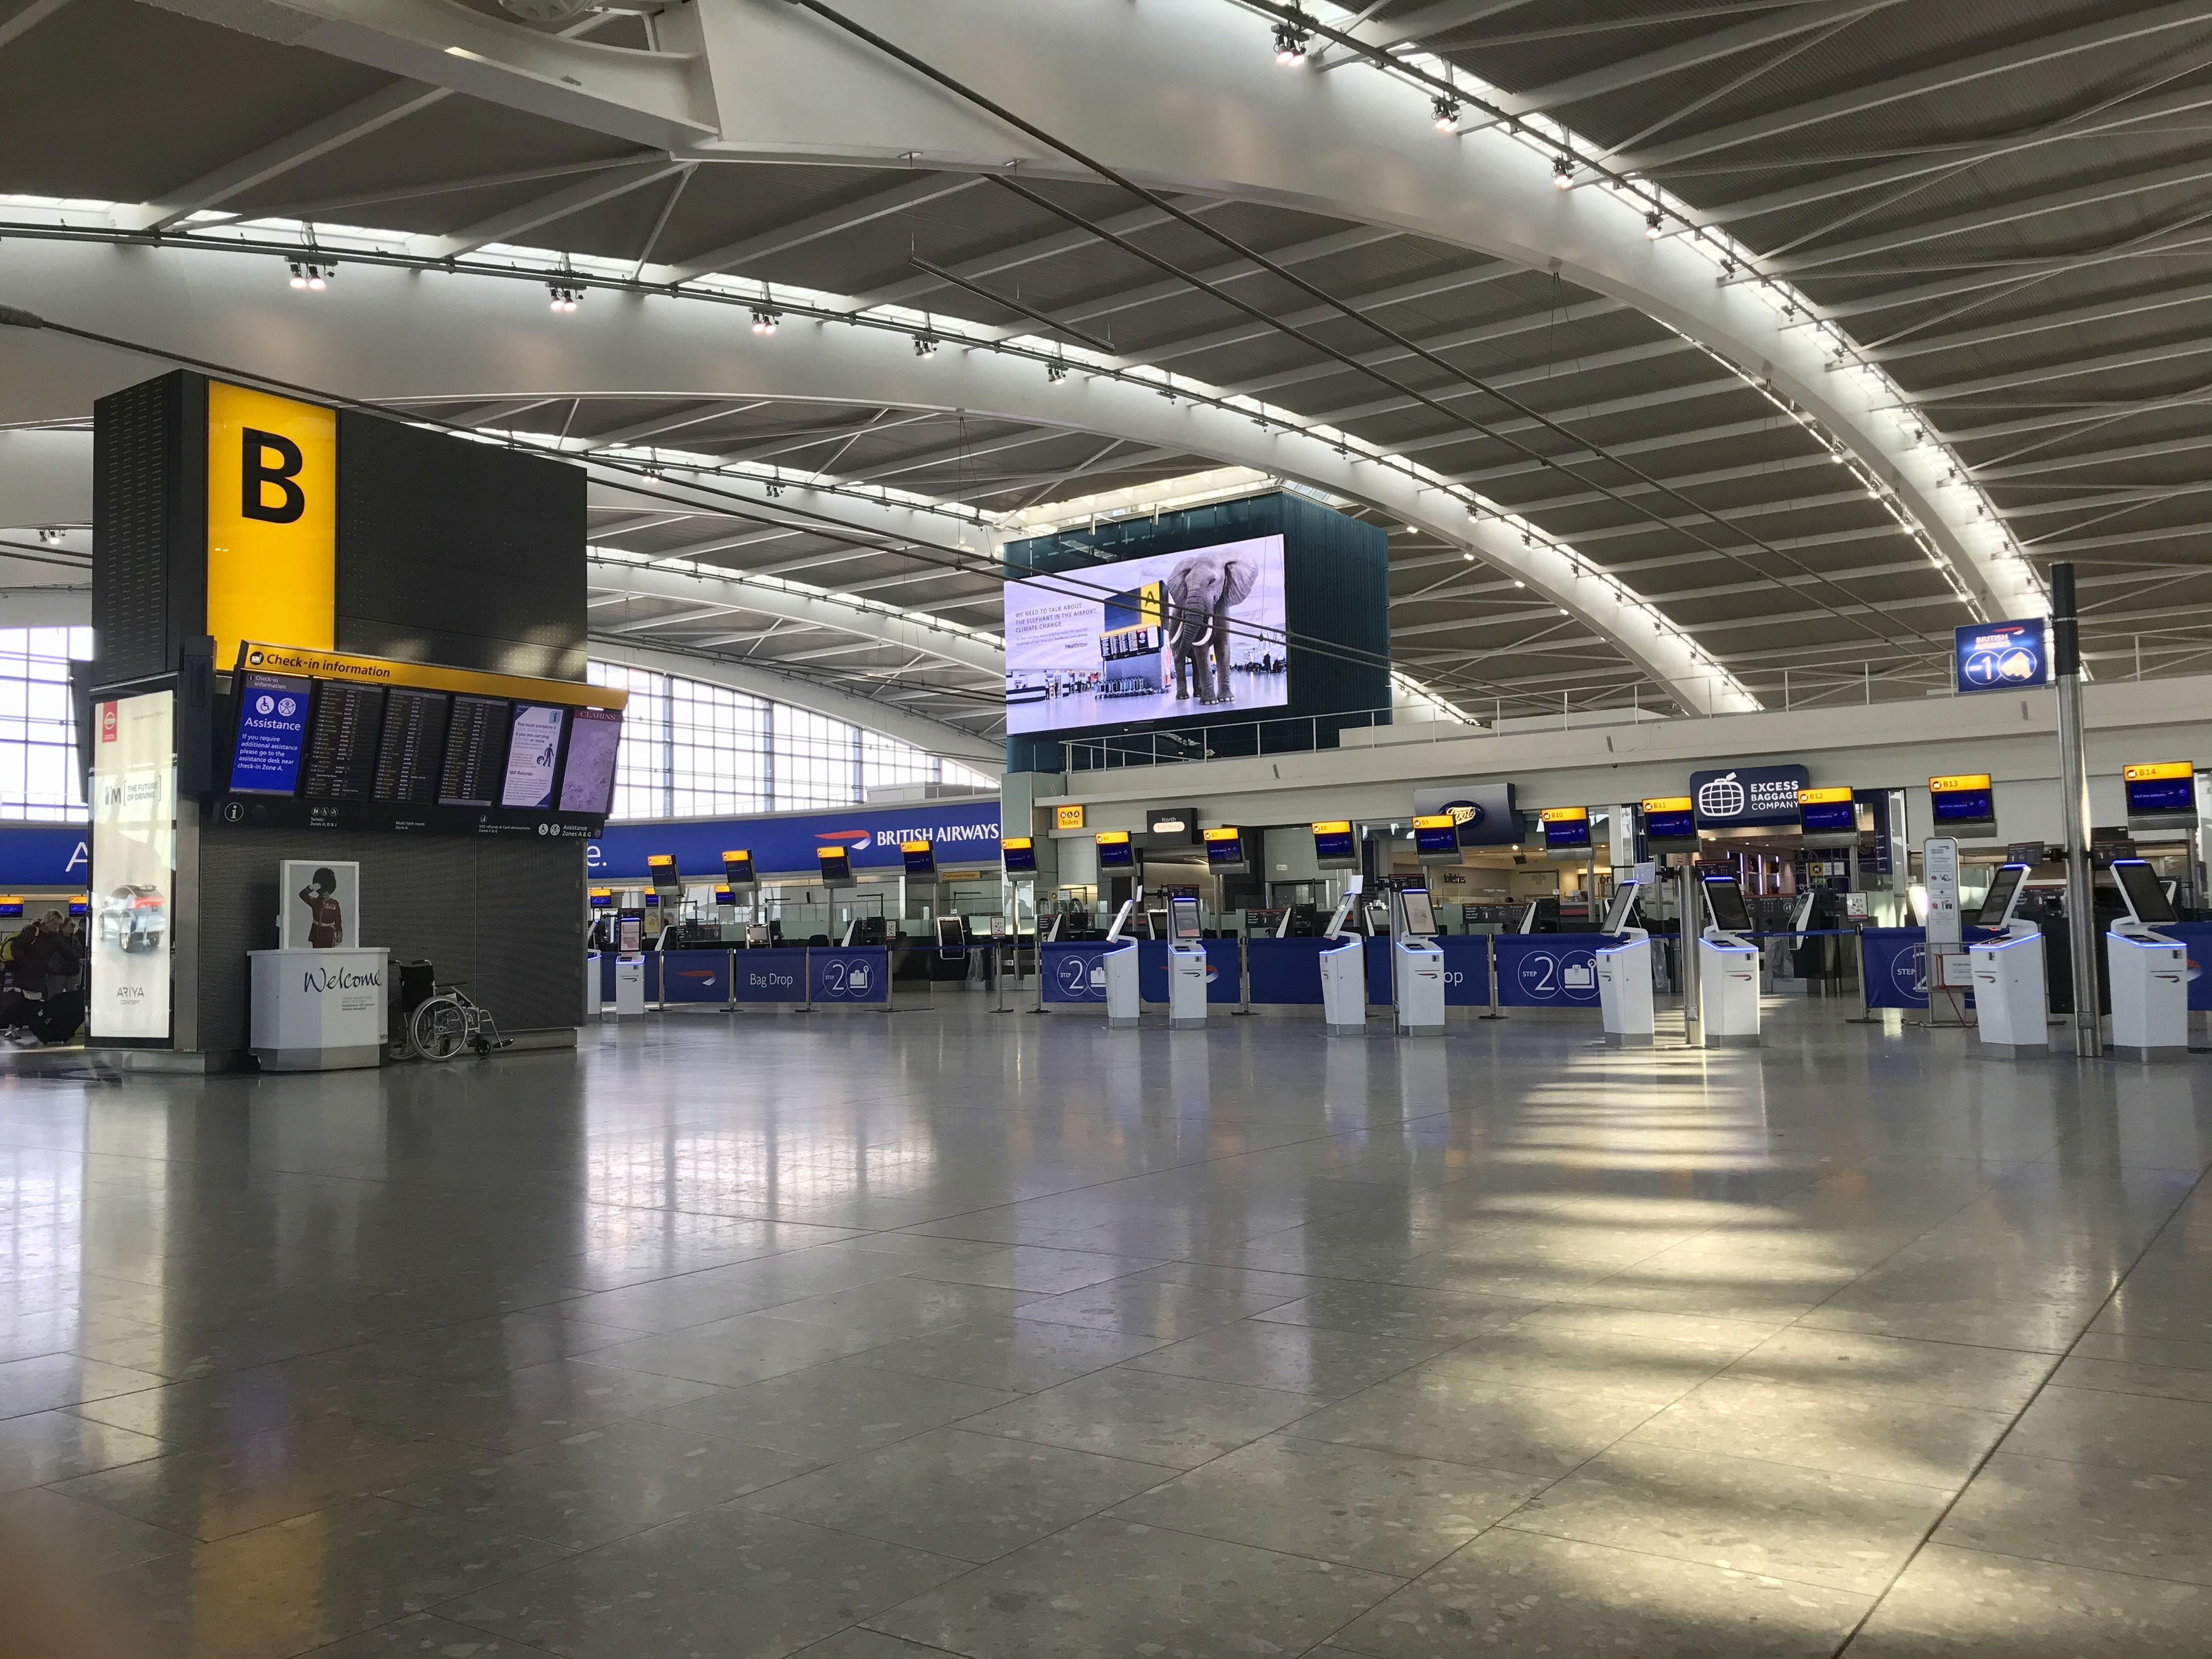 A view of the near empty departure area at London's Heathrow Airport's Terminal 5 departure, Thursday March 12, 2020.